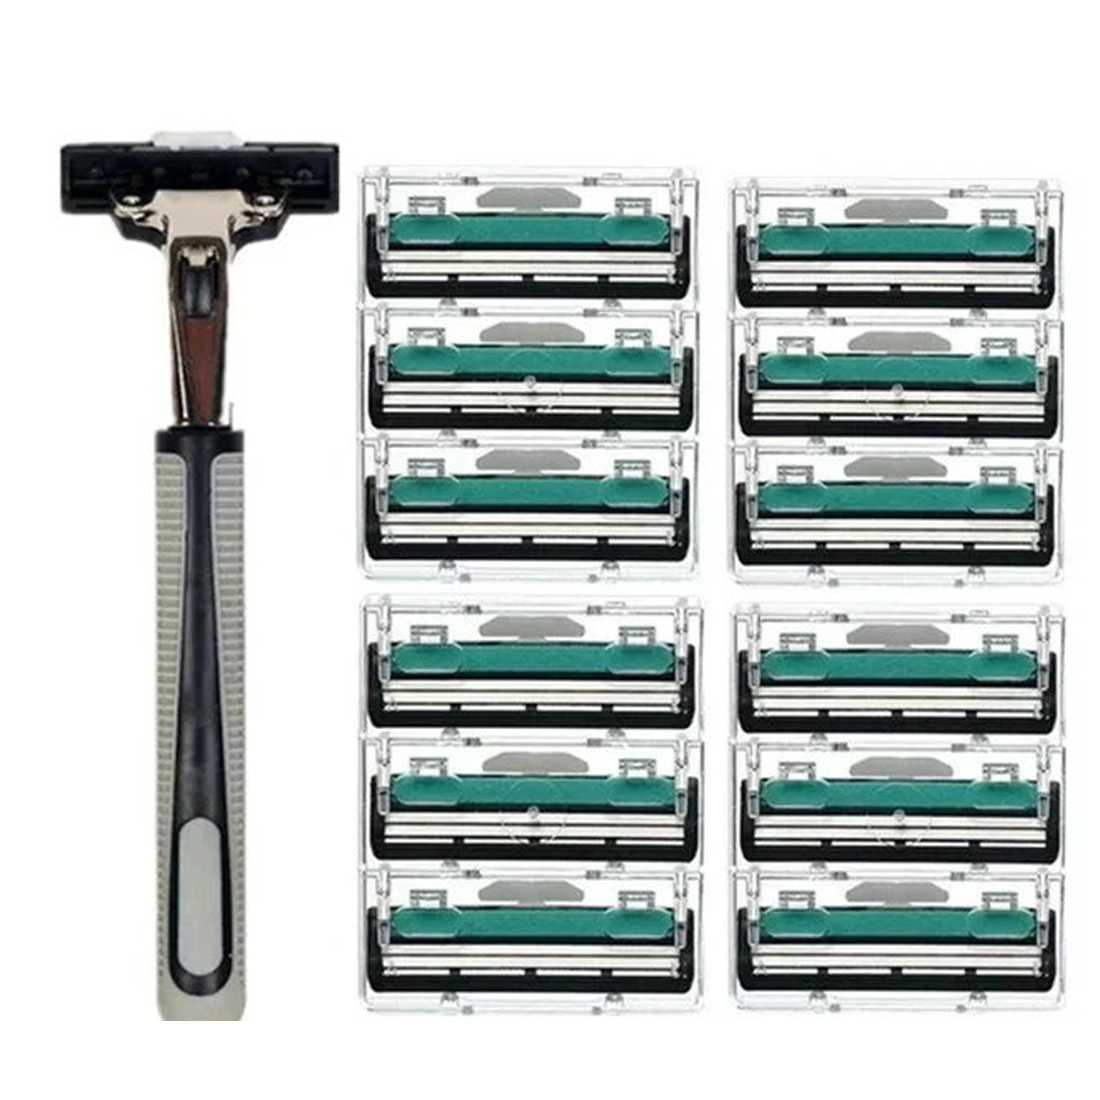 Replaceable Razor Blades Hot Shaver Original13pcs/set 1 Machine +12 Blades Best Shaving For Men's Face Hair Shaving Manual